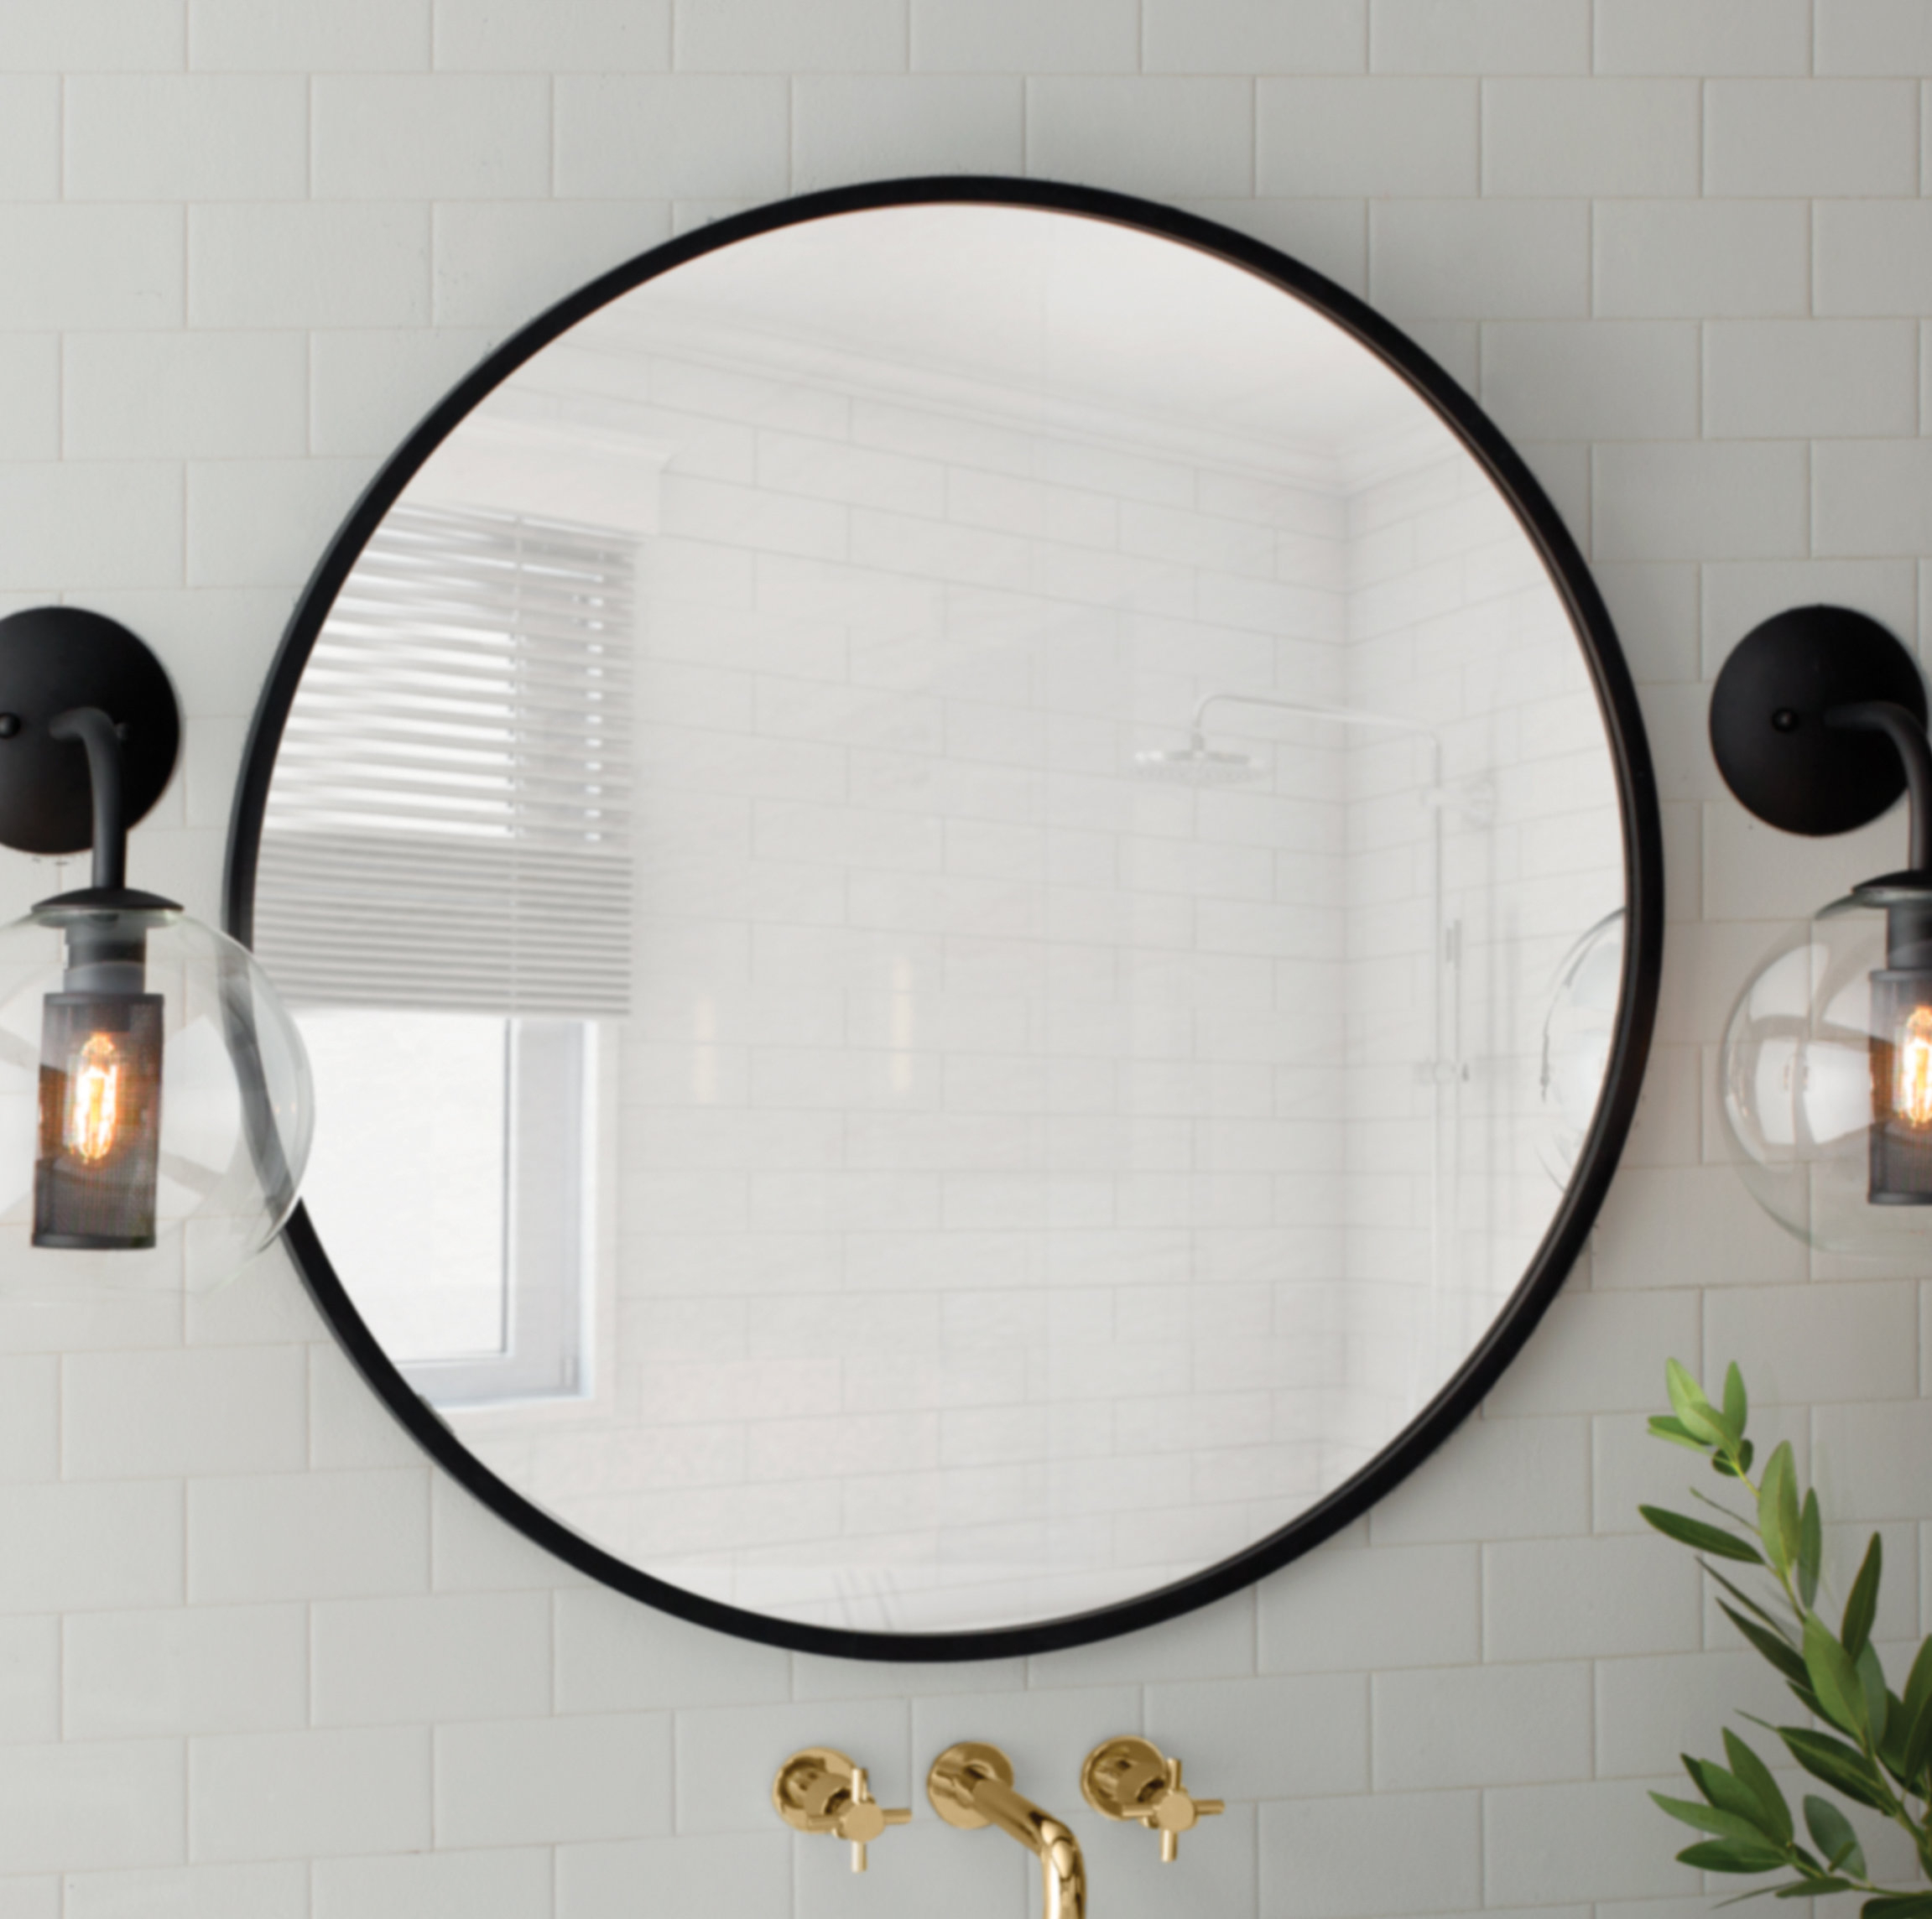 Hub Modern And Contemporary Accent Mirror Pertaining To Swagger Accent Wall Mirrors (View 5 of 20)